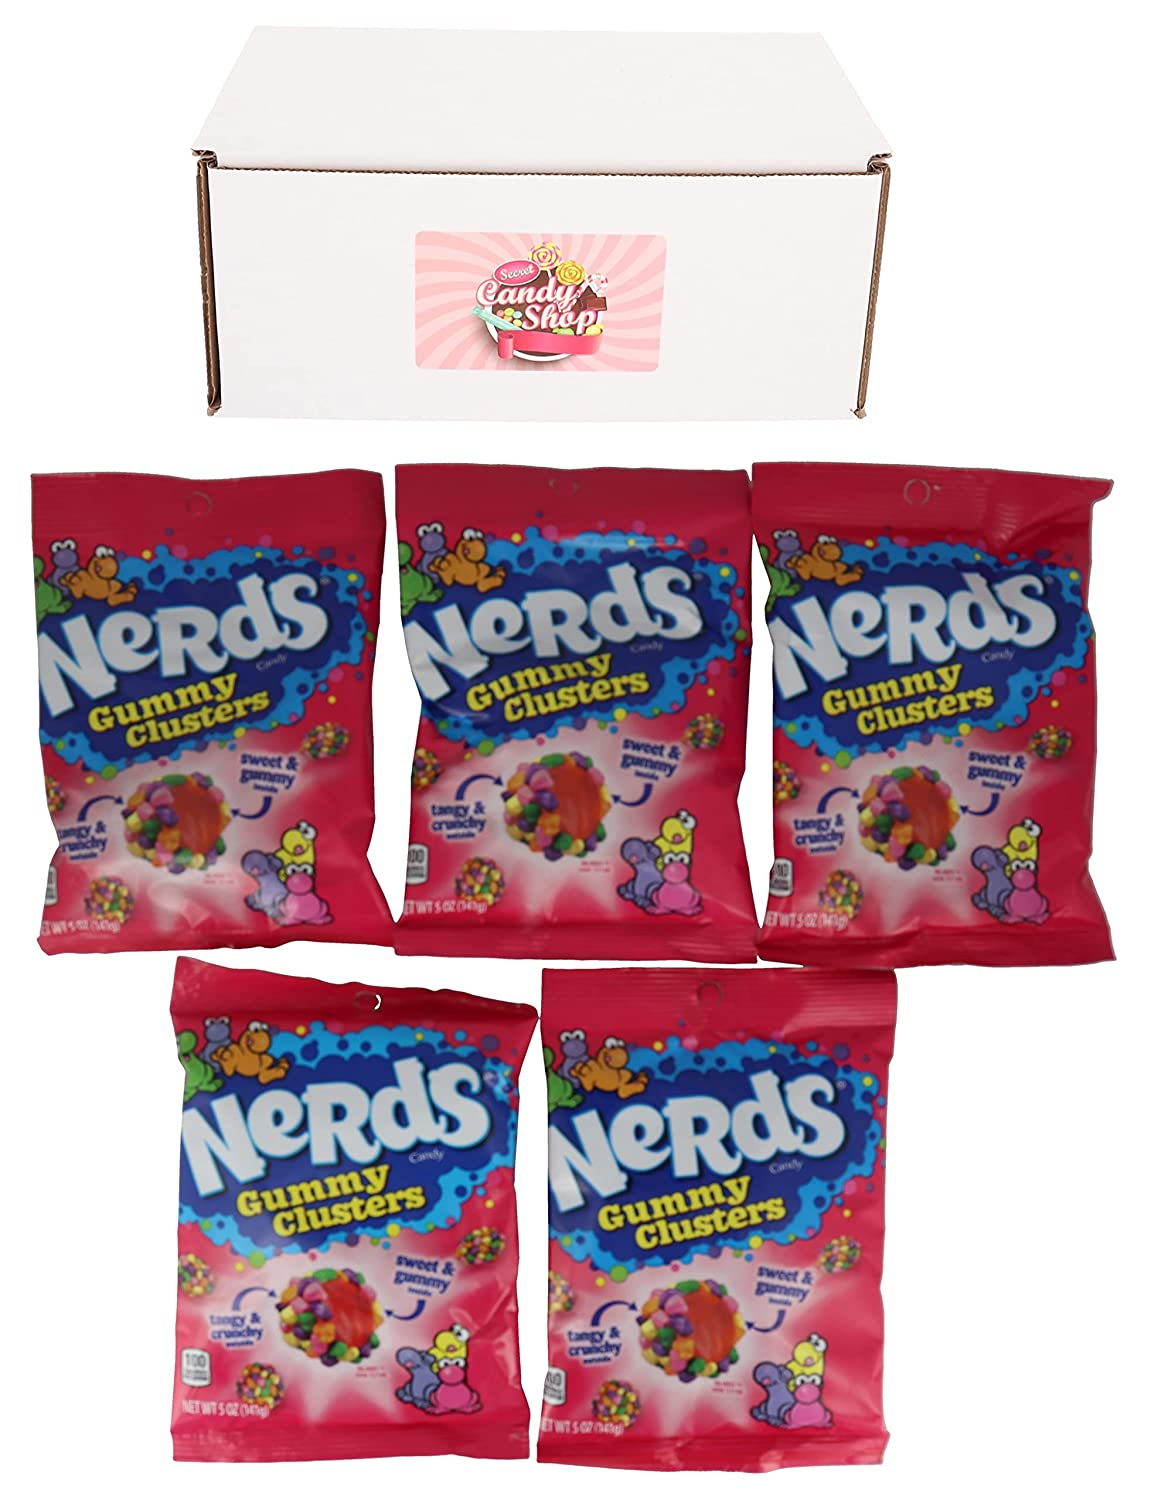 Nerds Gummy Clusters Candy 5oz (Pack of 5) With Magnet